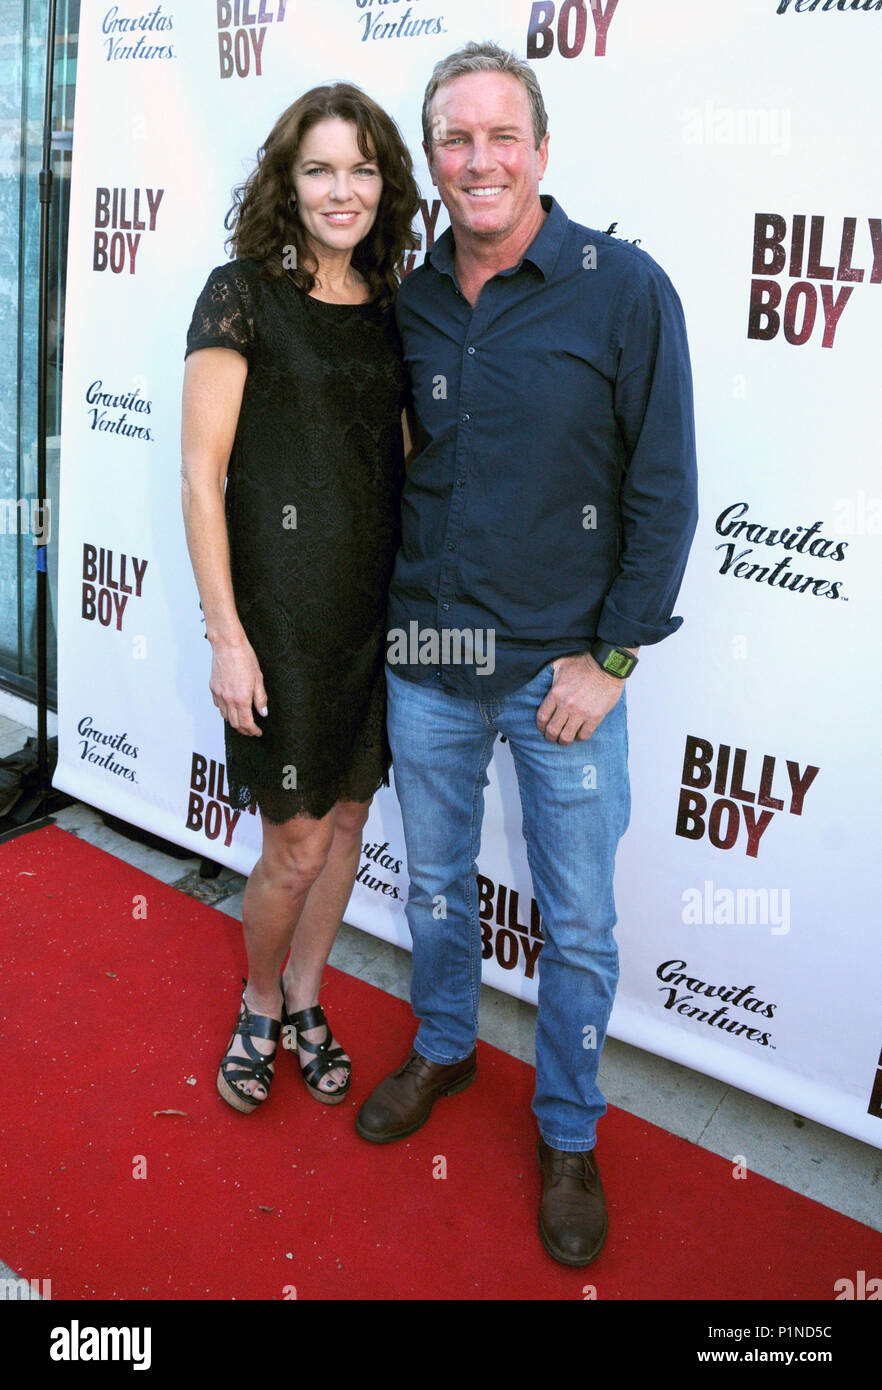 Beverly Hills, California, USA. 12th June, 2018. (L-R) Actress Susan Walters and husband actor Linden Ashby attend the Los Angeles Premiere of 'Billy Boy' on June 12, 2018 at Laemmle Music Hall in Beverly Hills, California. Photo by Barry King/Alamy Live News - Stock Image